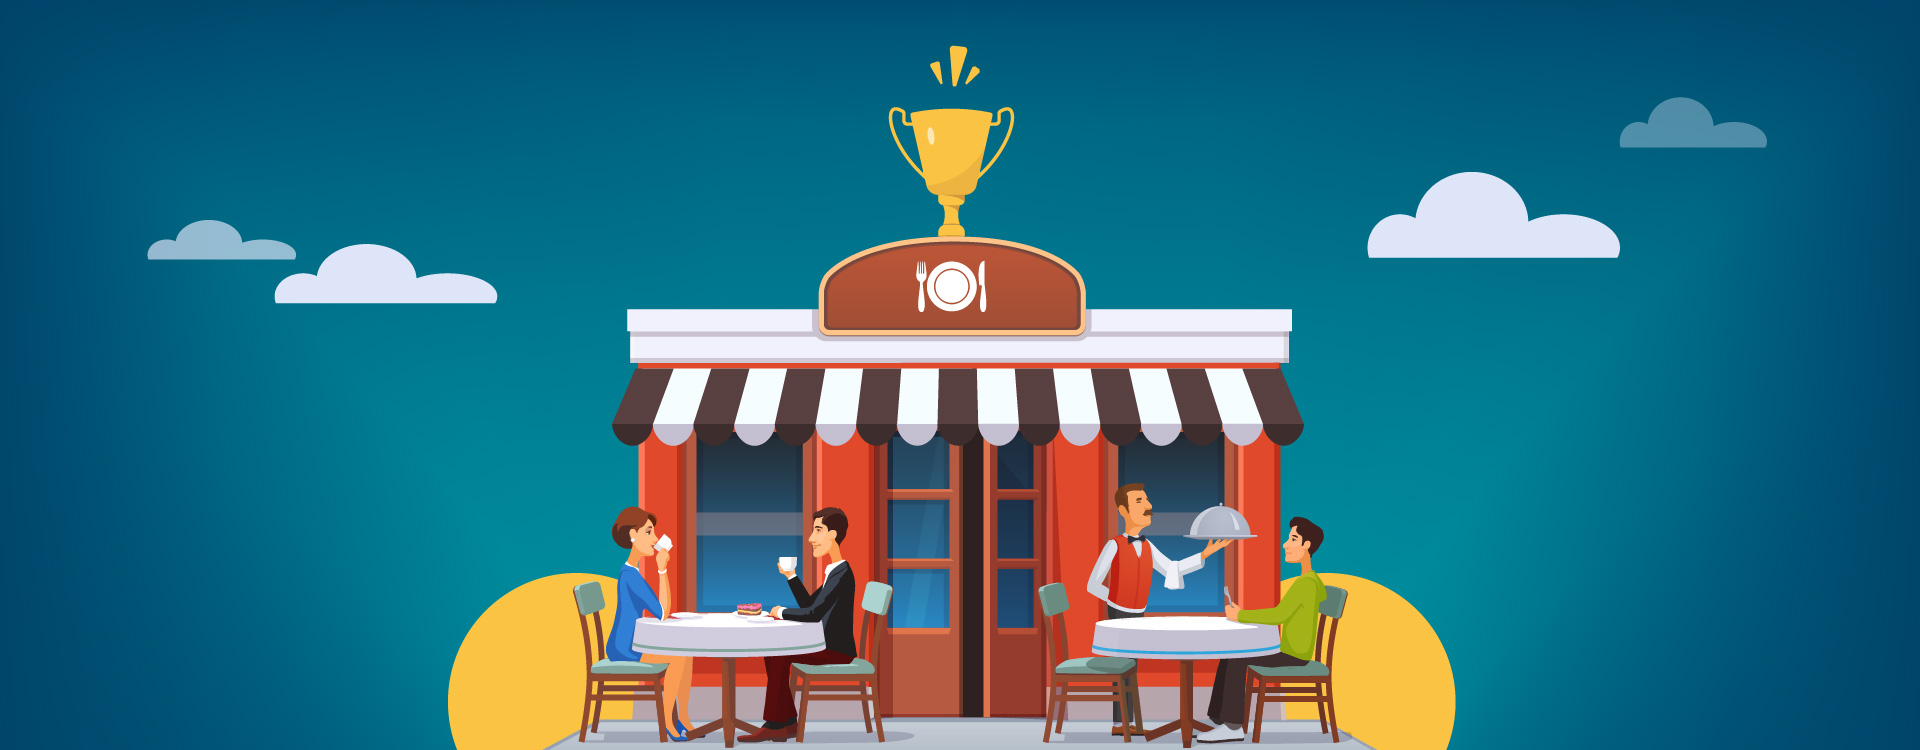 Standalone restaurants own a major share in the restaurant and food businesses.